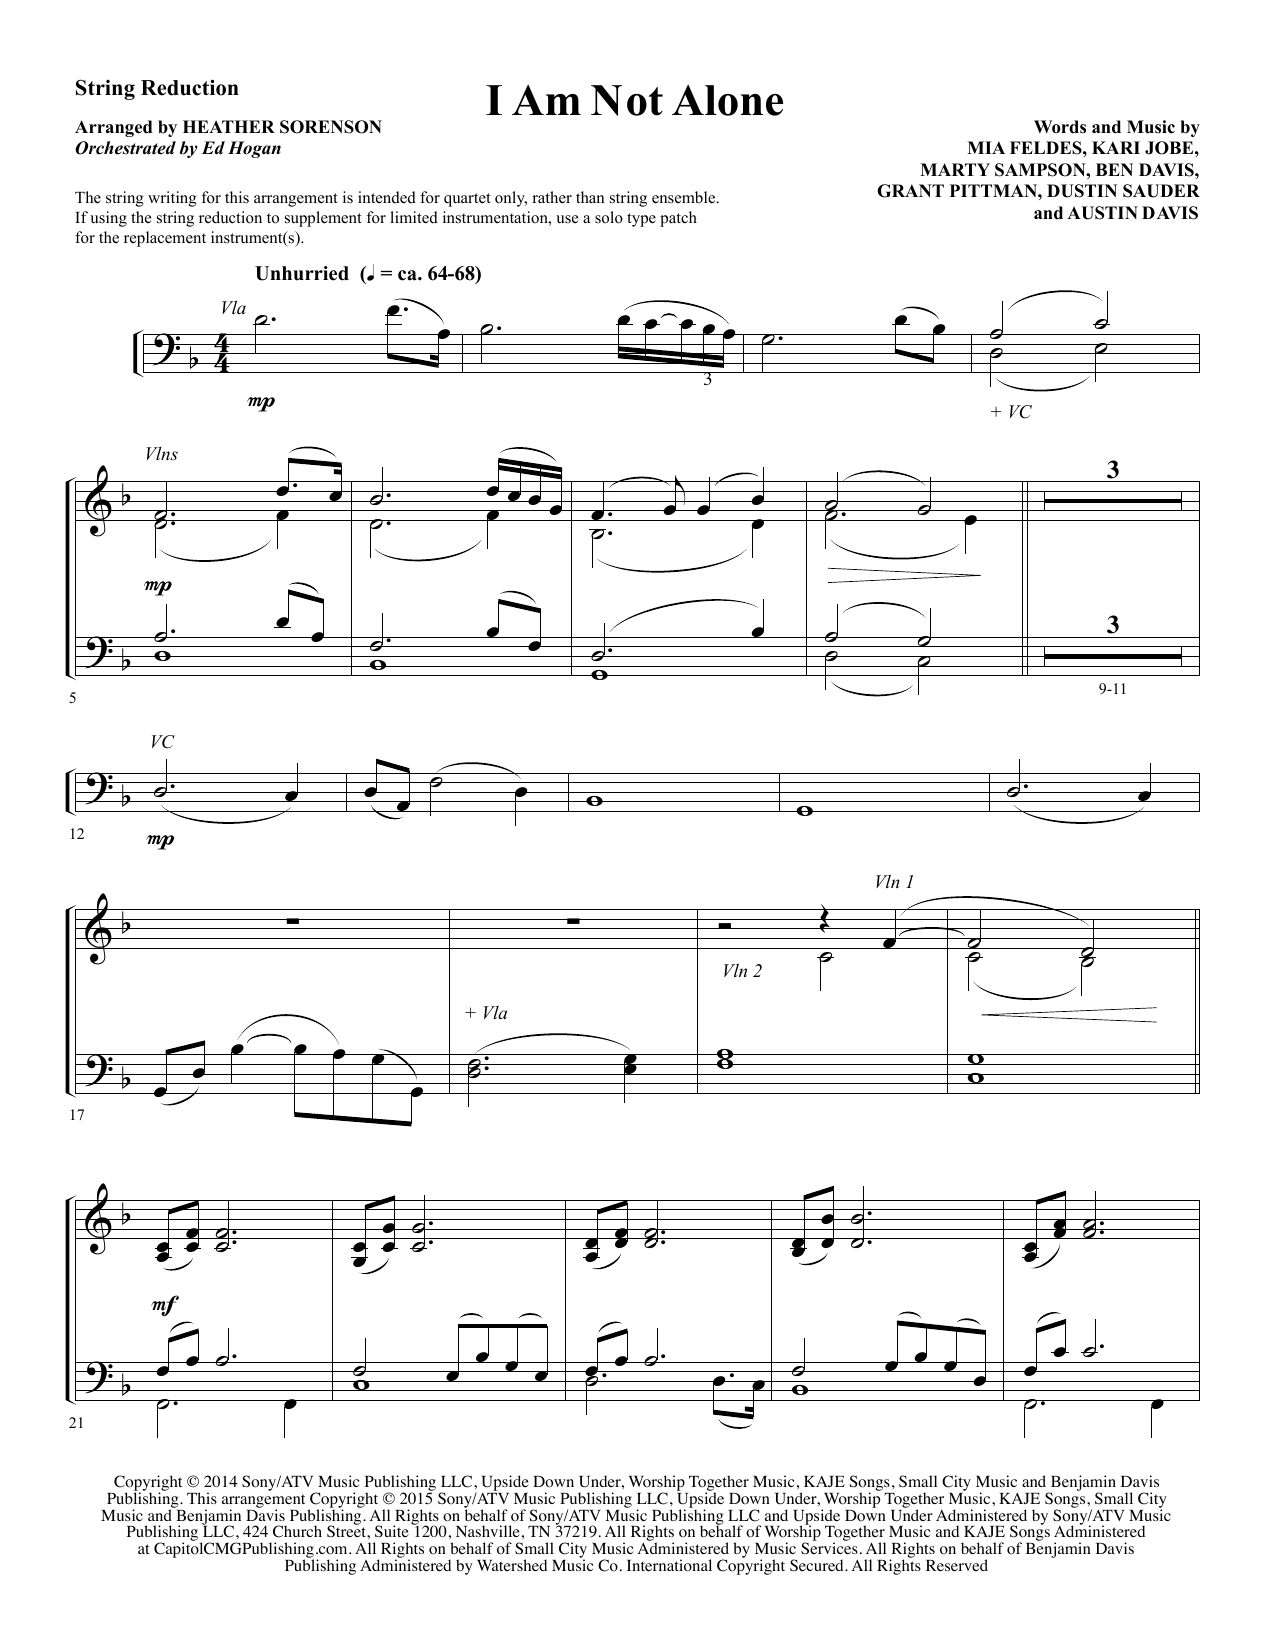 I Am Not Alone - Keyboard String Reduction Sheet Music